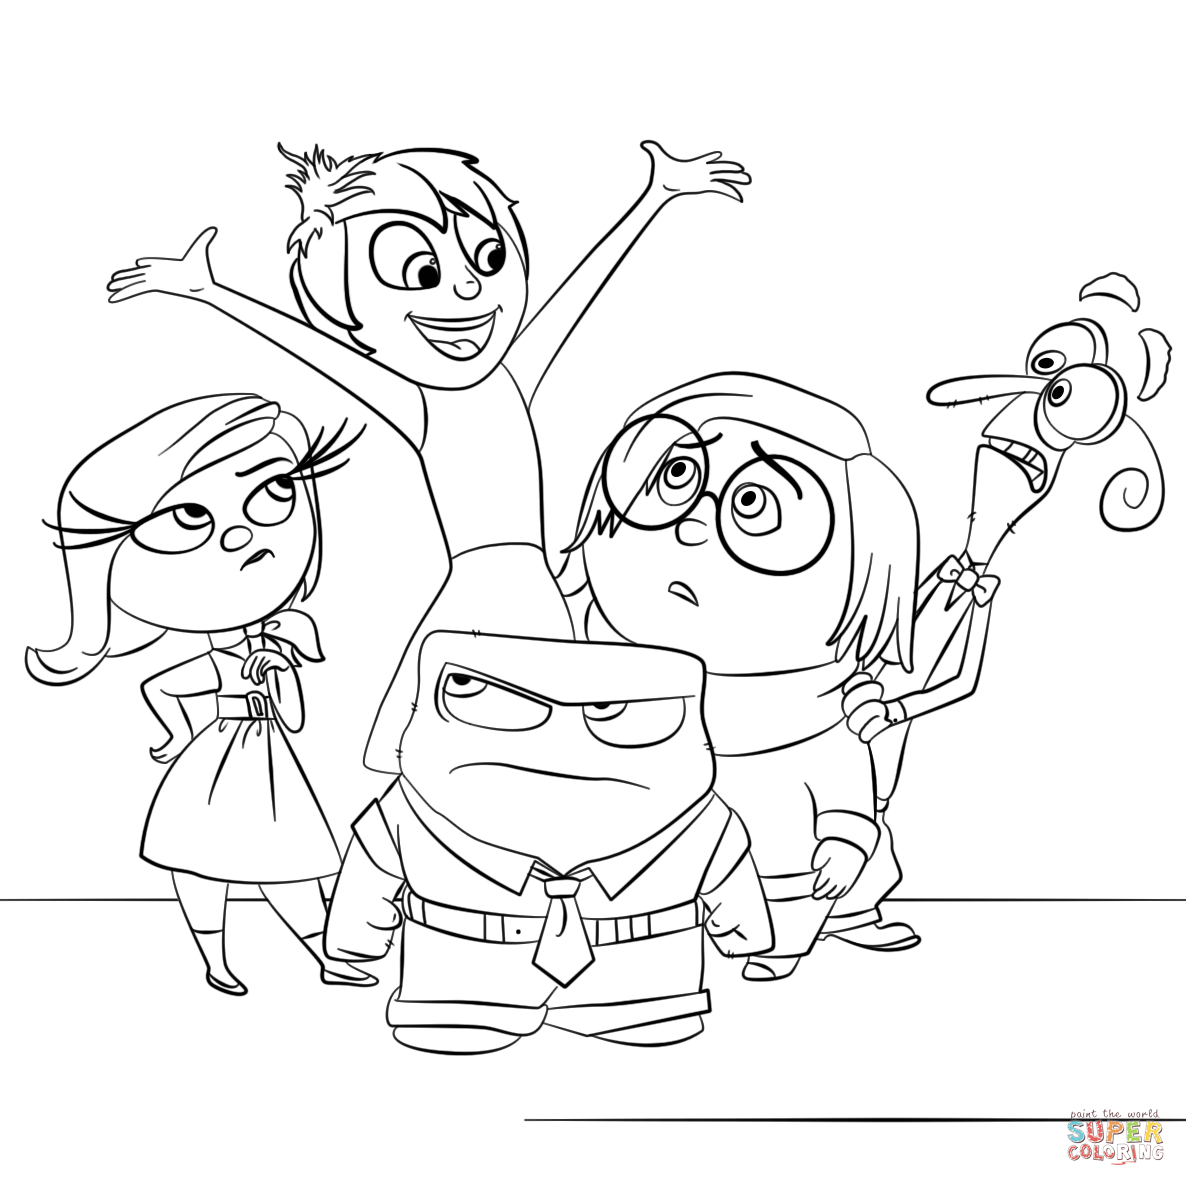 Inside out coloring pages all characters